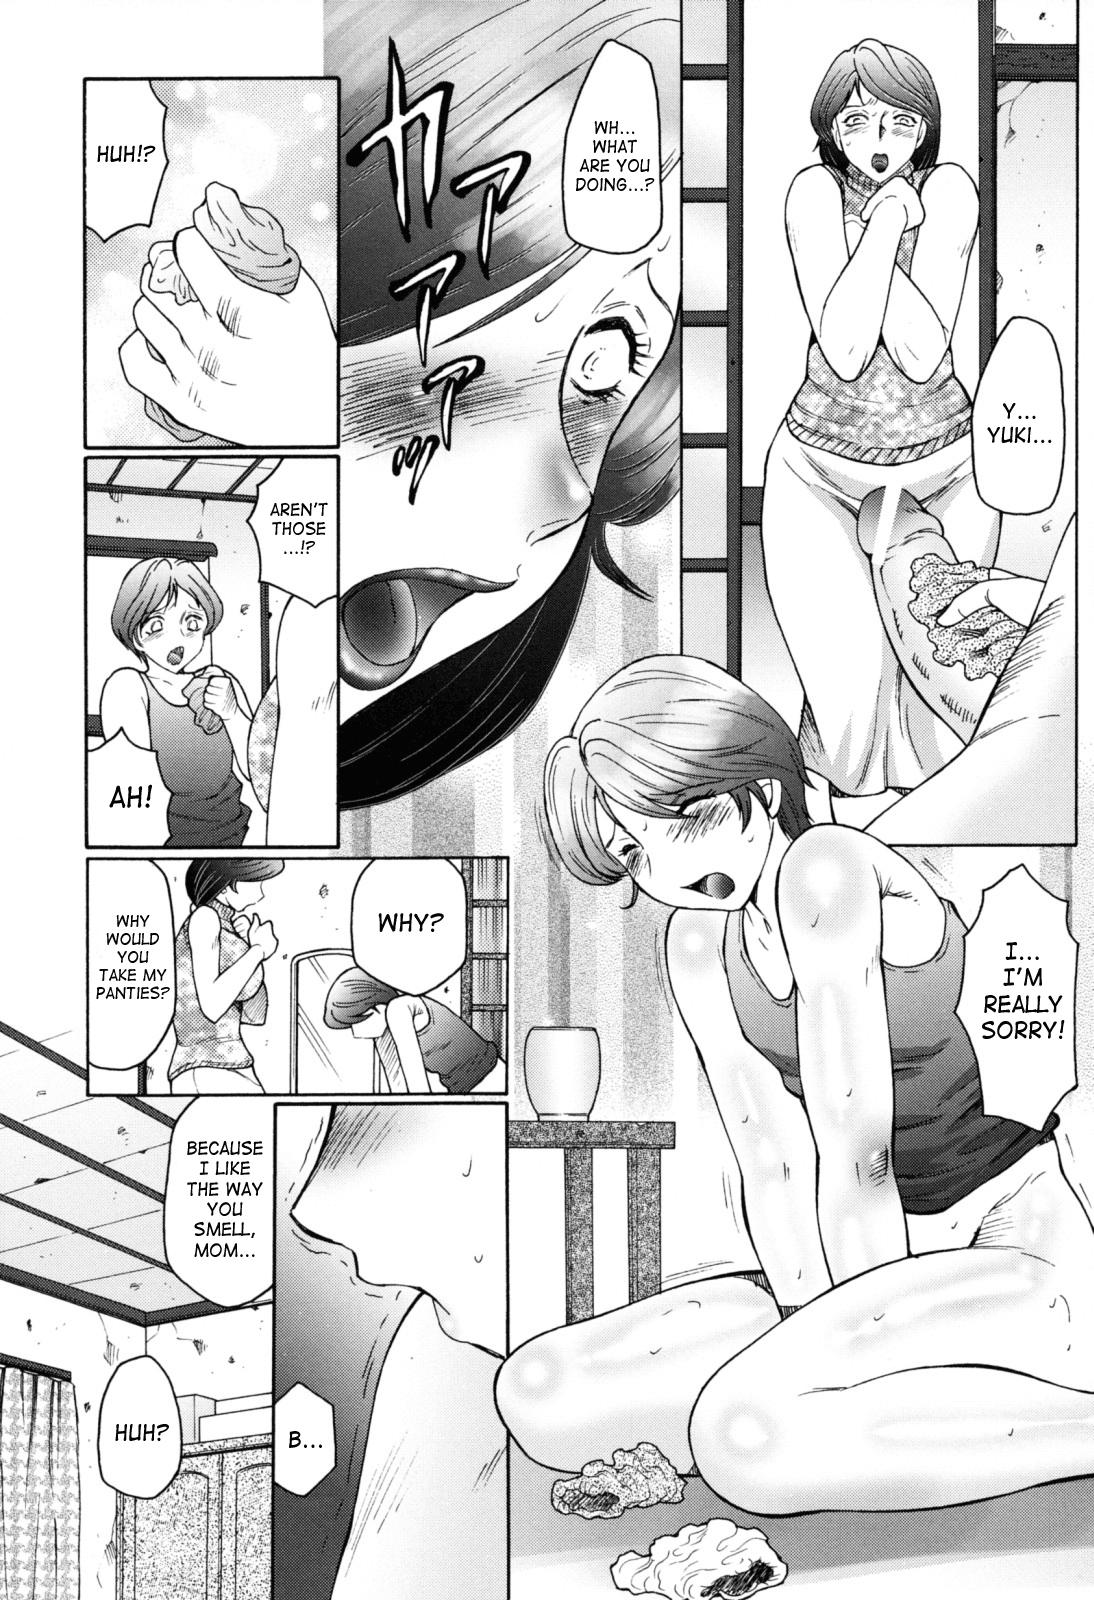 [Fuusen Club] Boshino Toriko - The Captive of Mother and the Son | Enslaved Mother and Son Ch. 1-5 [English] [SaHa] 19